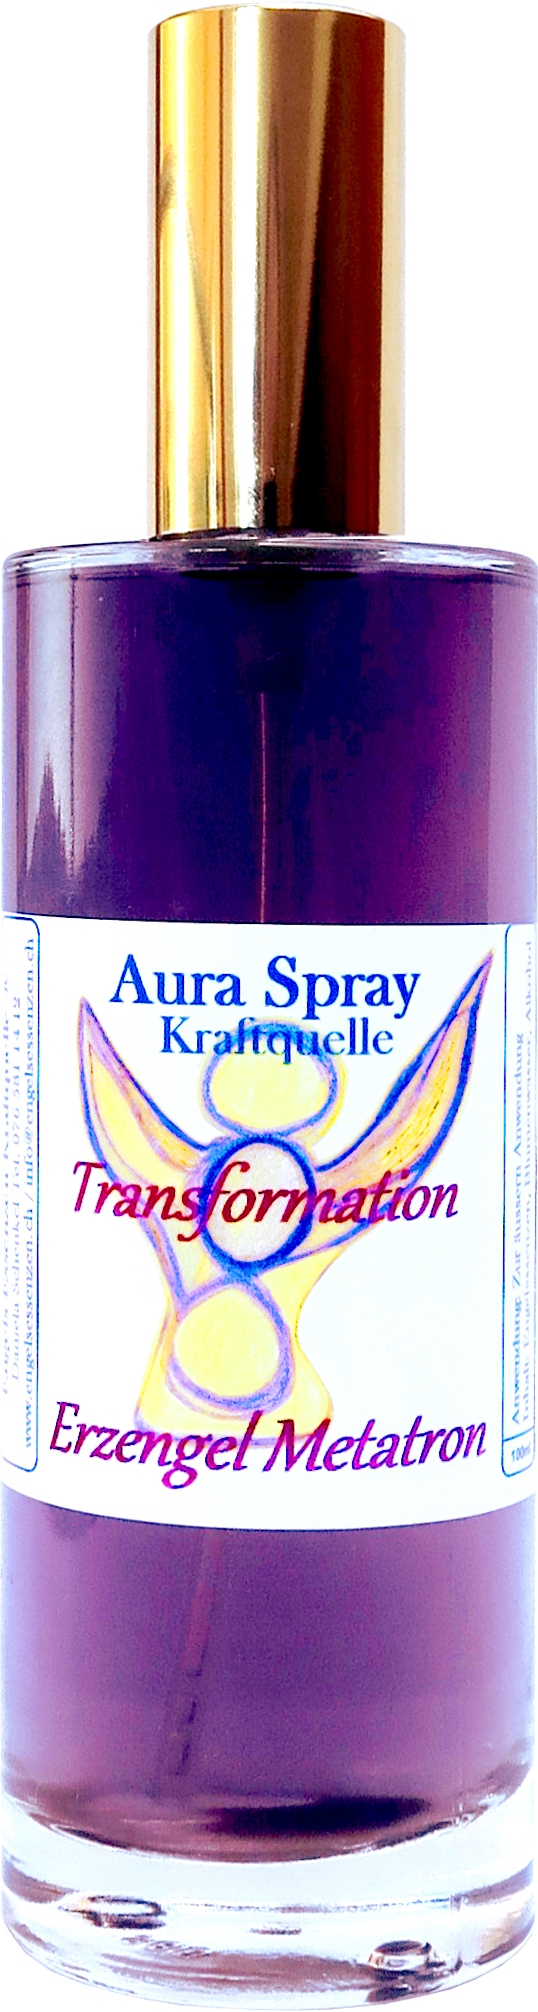 Aura Spray Erzengel Metatron